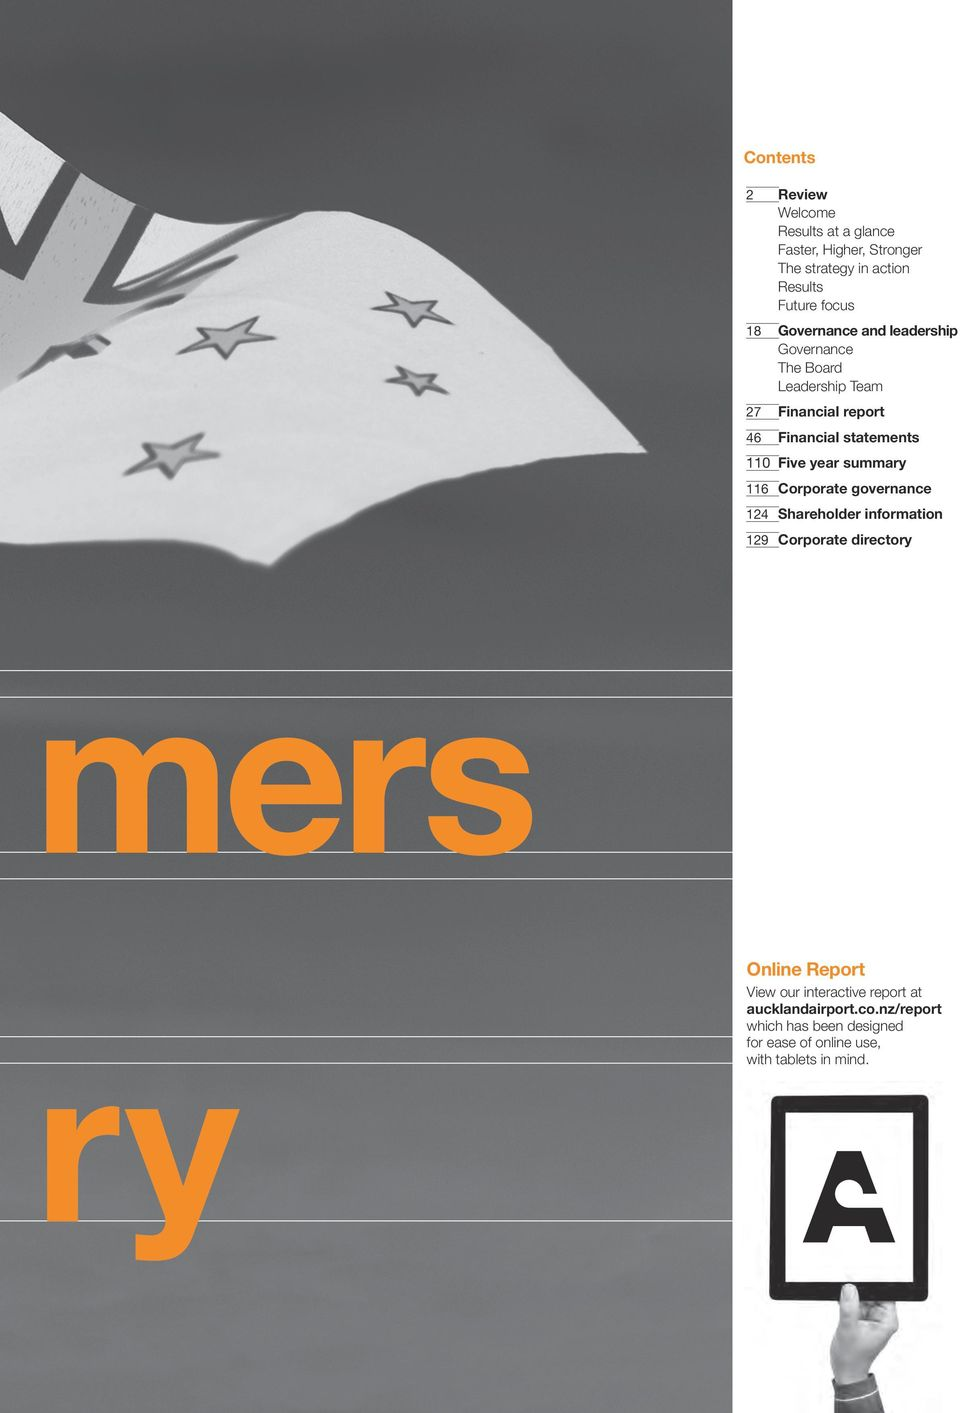 year summary 116 Corporate governance 124 Shareholder information 129 Corporate directory mers Online Report ry View